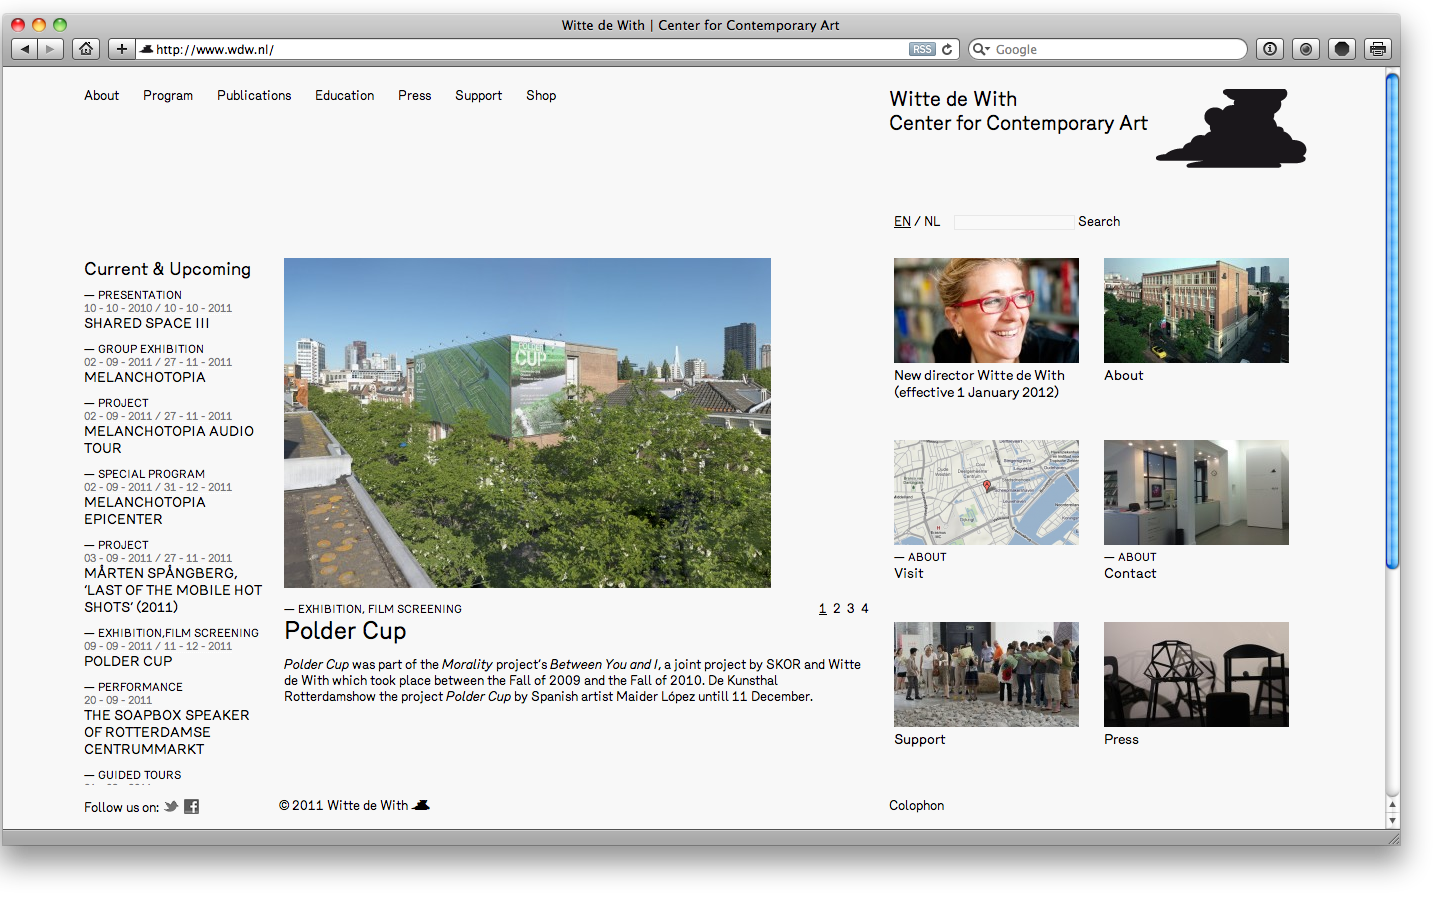 Website for Witte de With Rotterdam in collaboration with Remco van Bladel